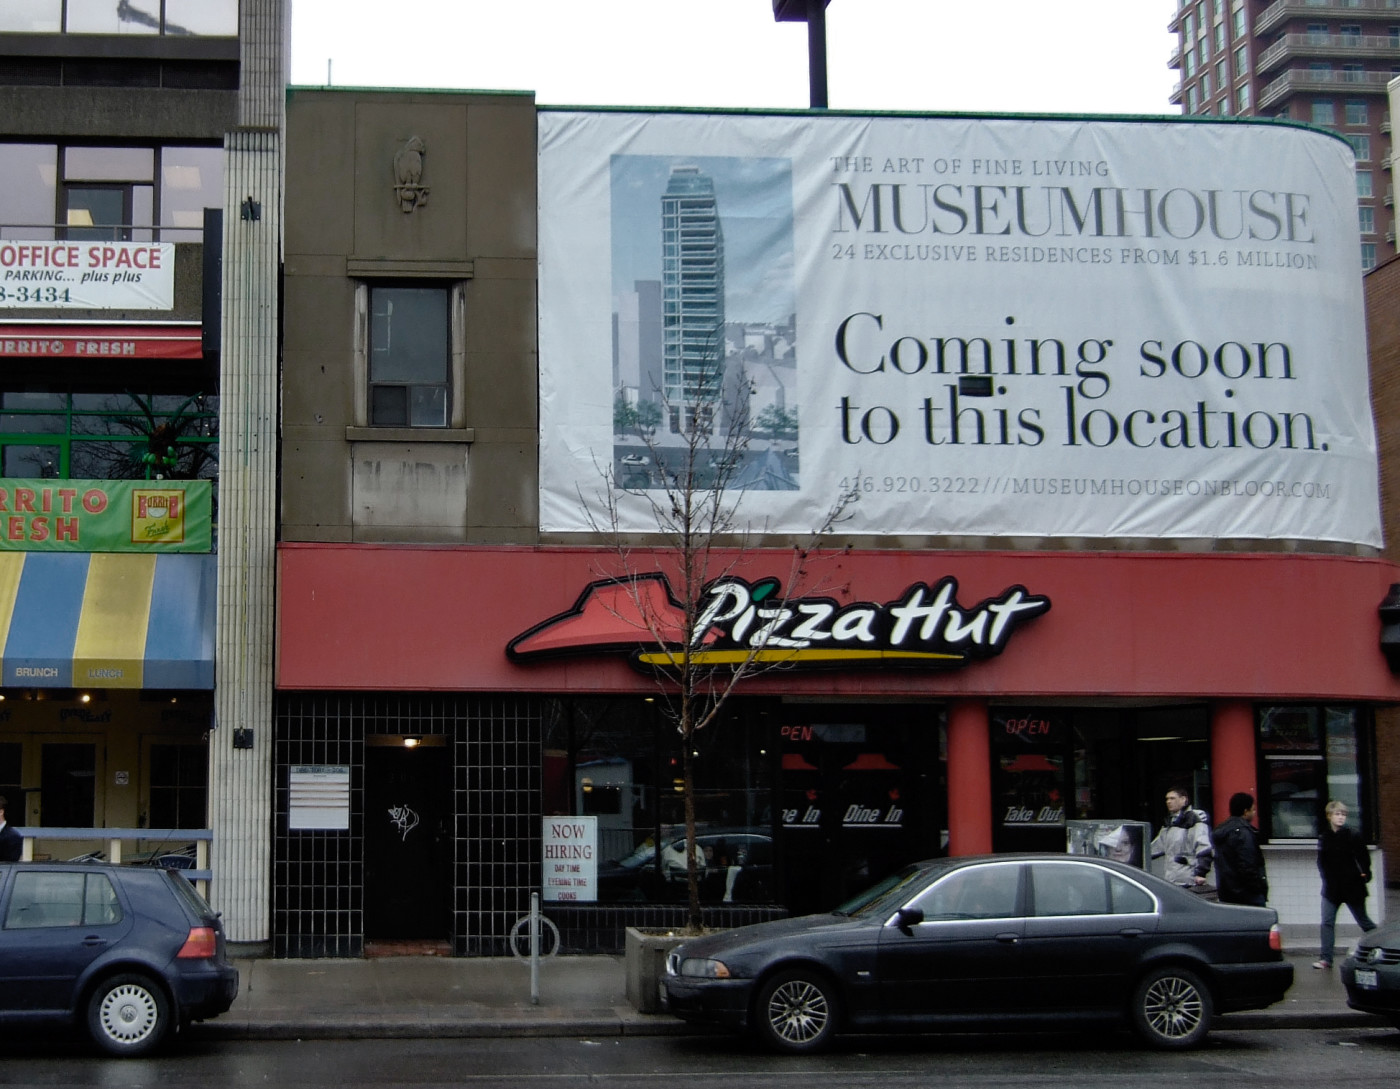 Figure 1. Site of the Museumhouse condo tower, as proposed, 2007. Prominent branding of the name was visible at the site until project neared completion in 2011 and all units were (presumed) sold. [Idlewild]